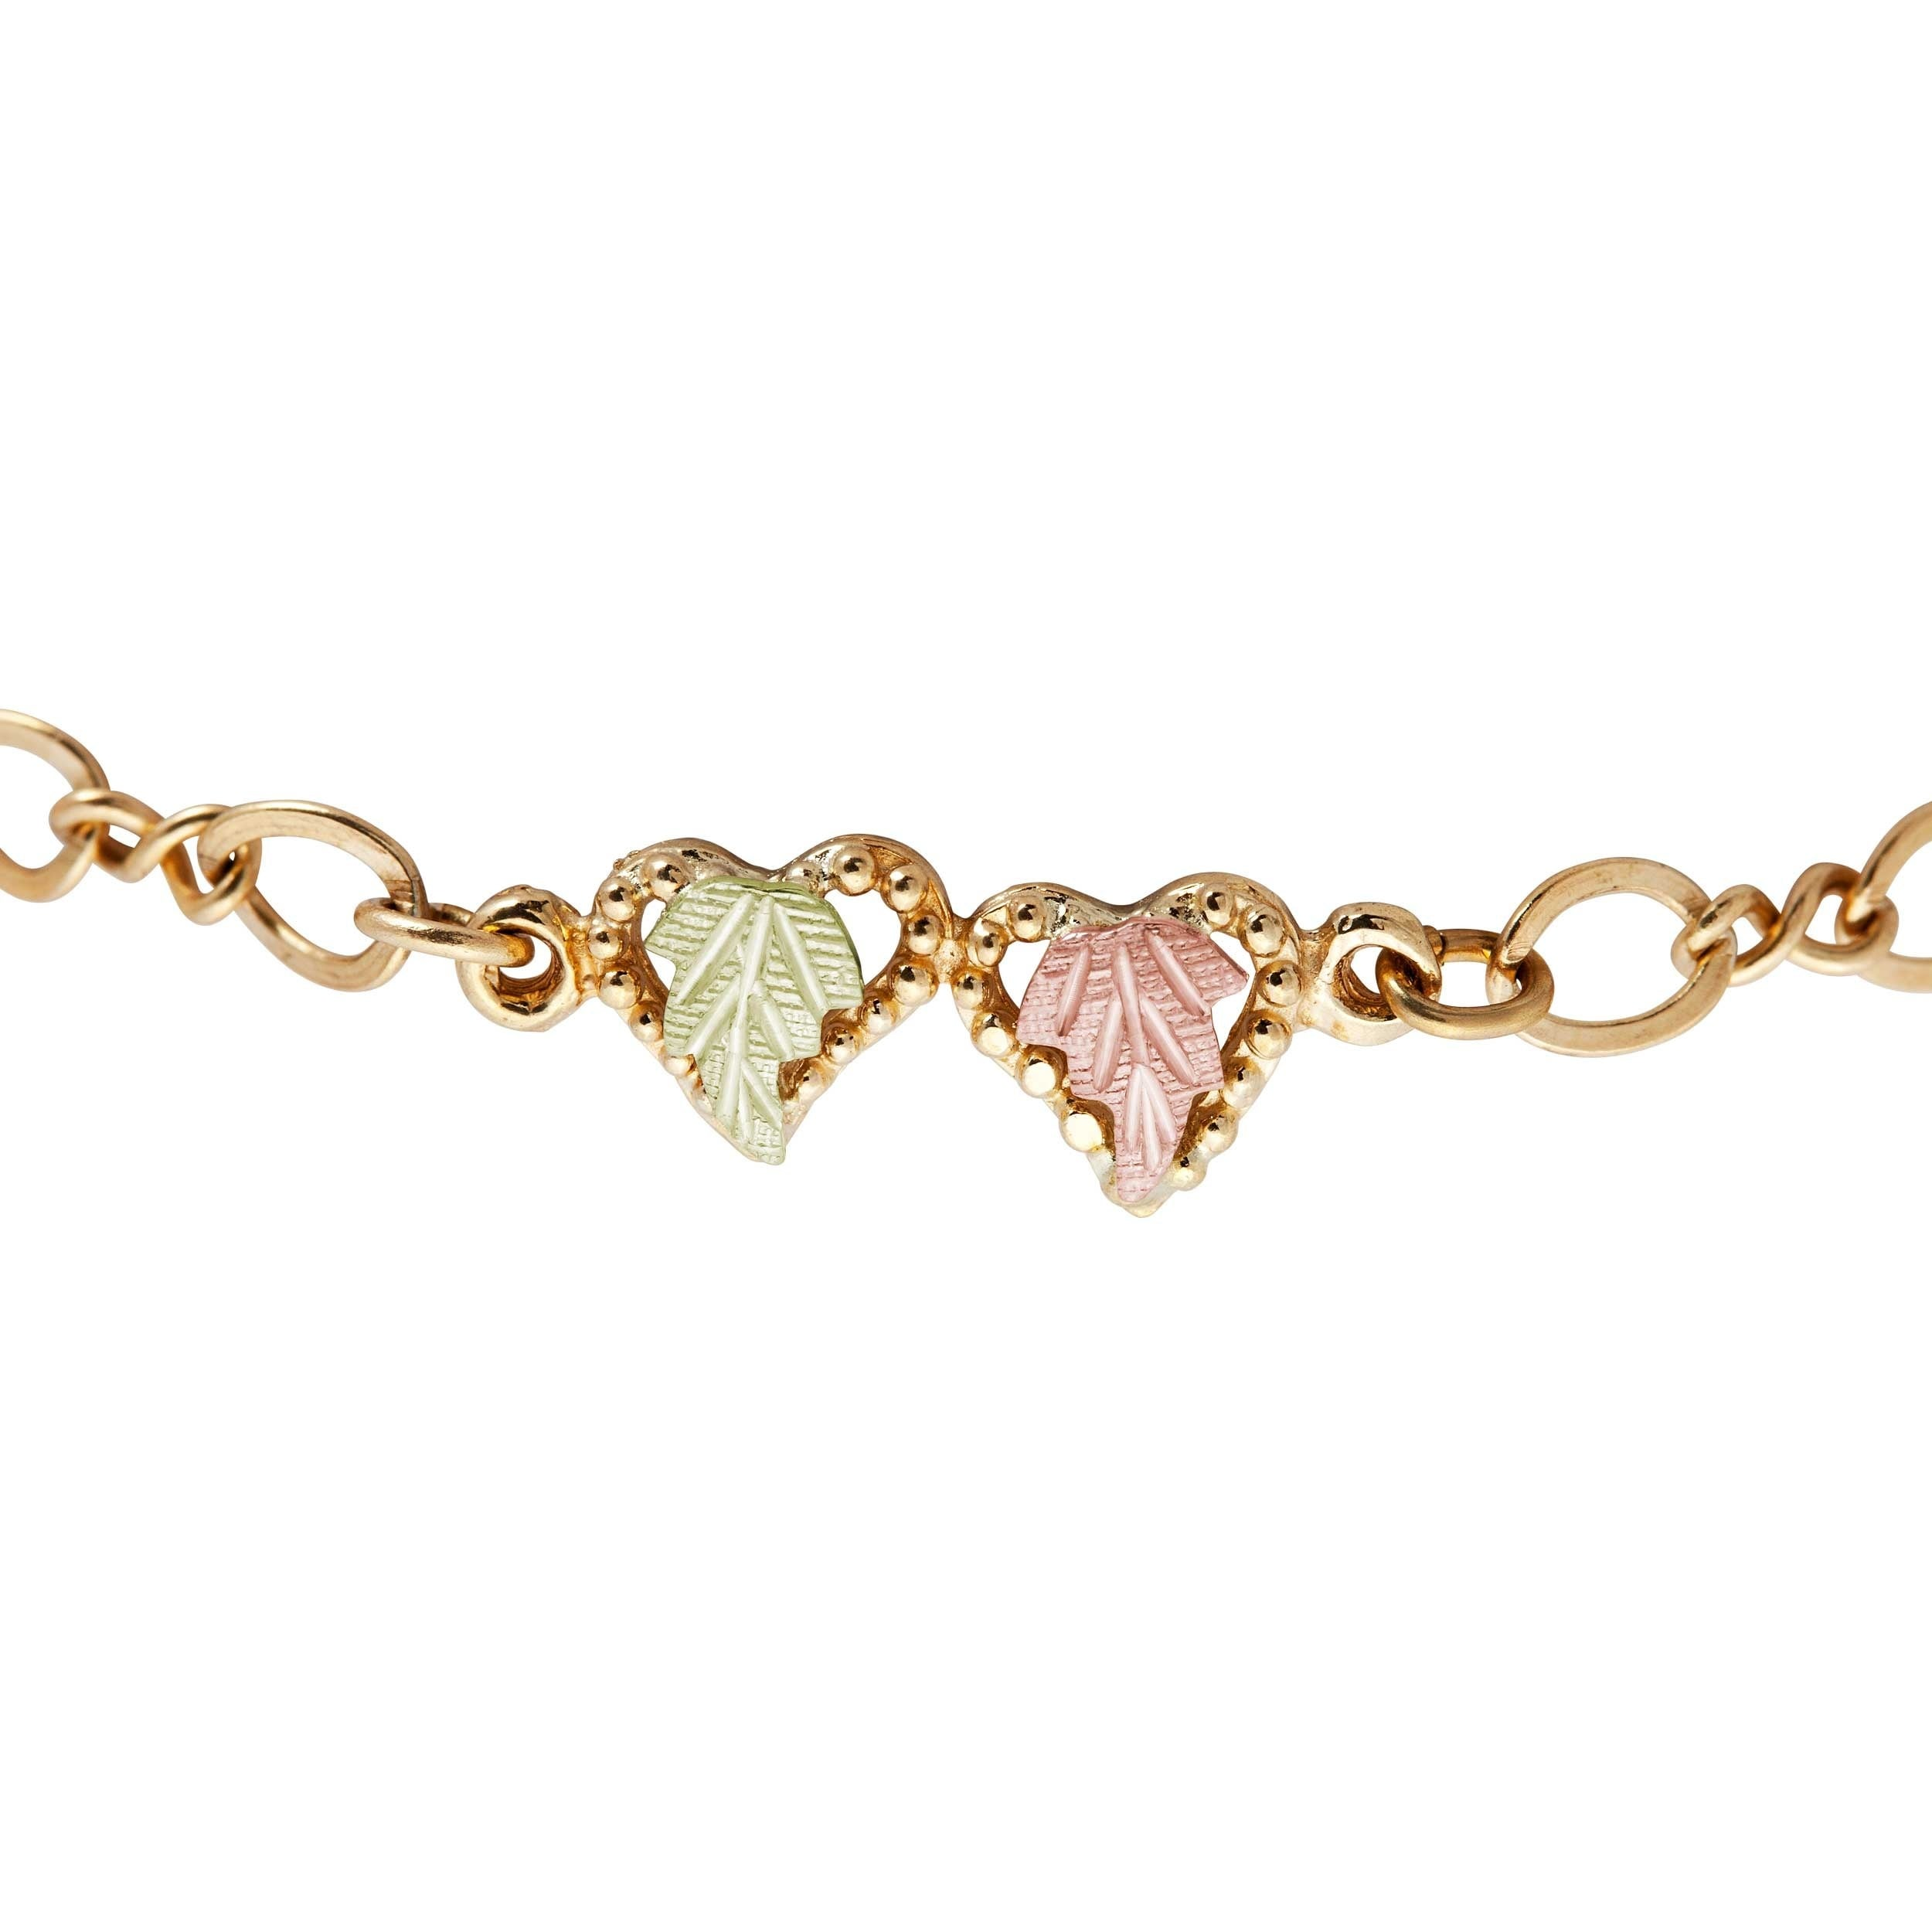 wishes tiny gold products your bracelet joy bali jewellery follow heart